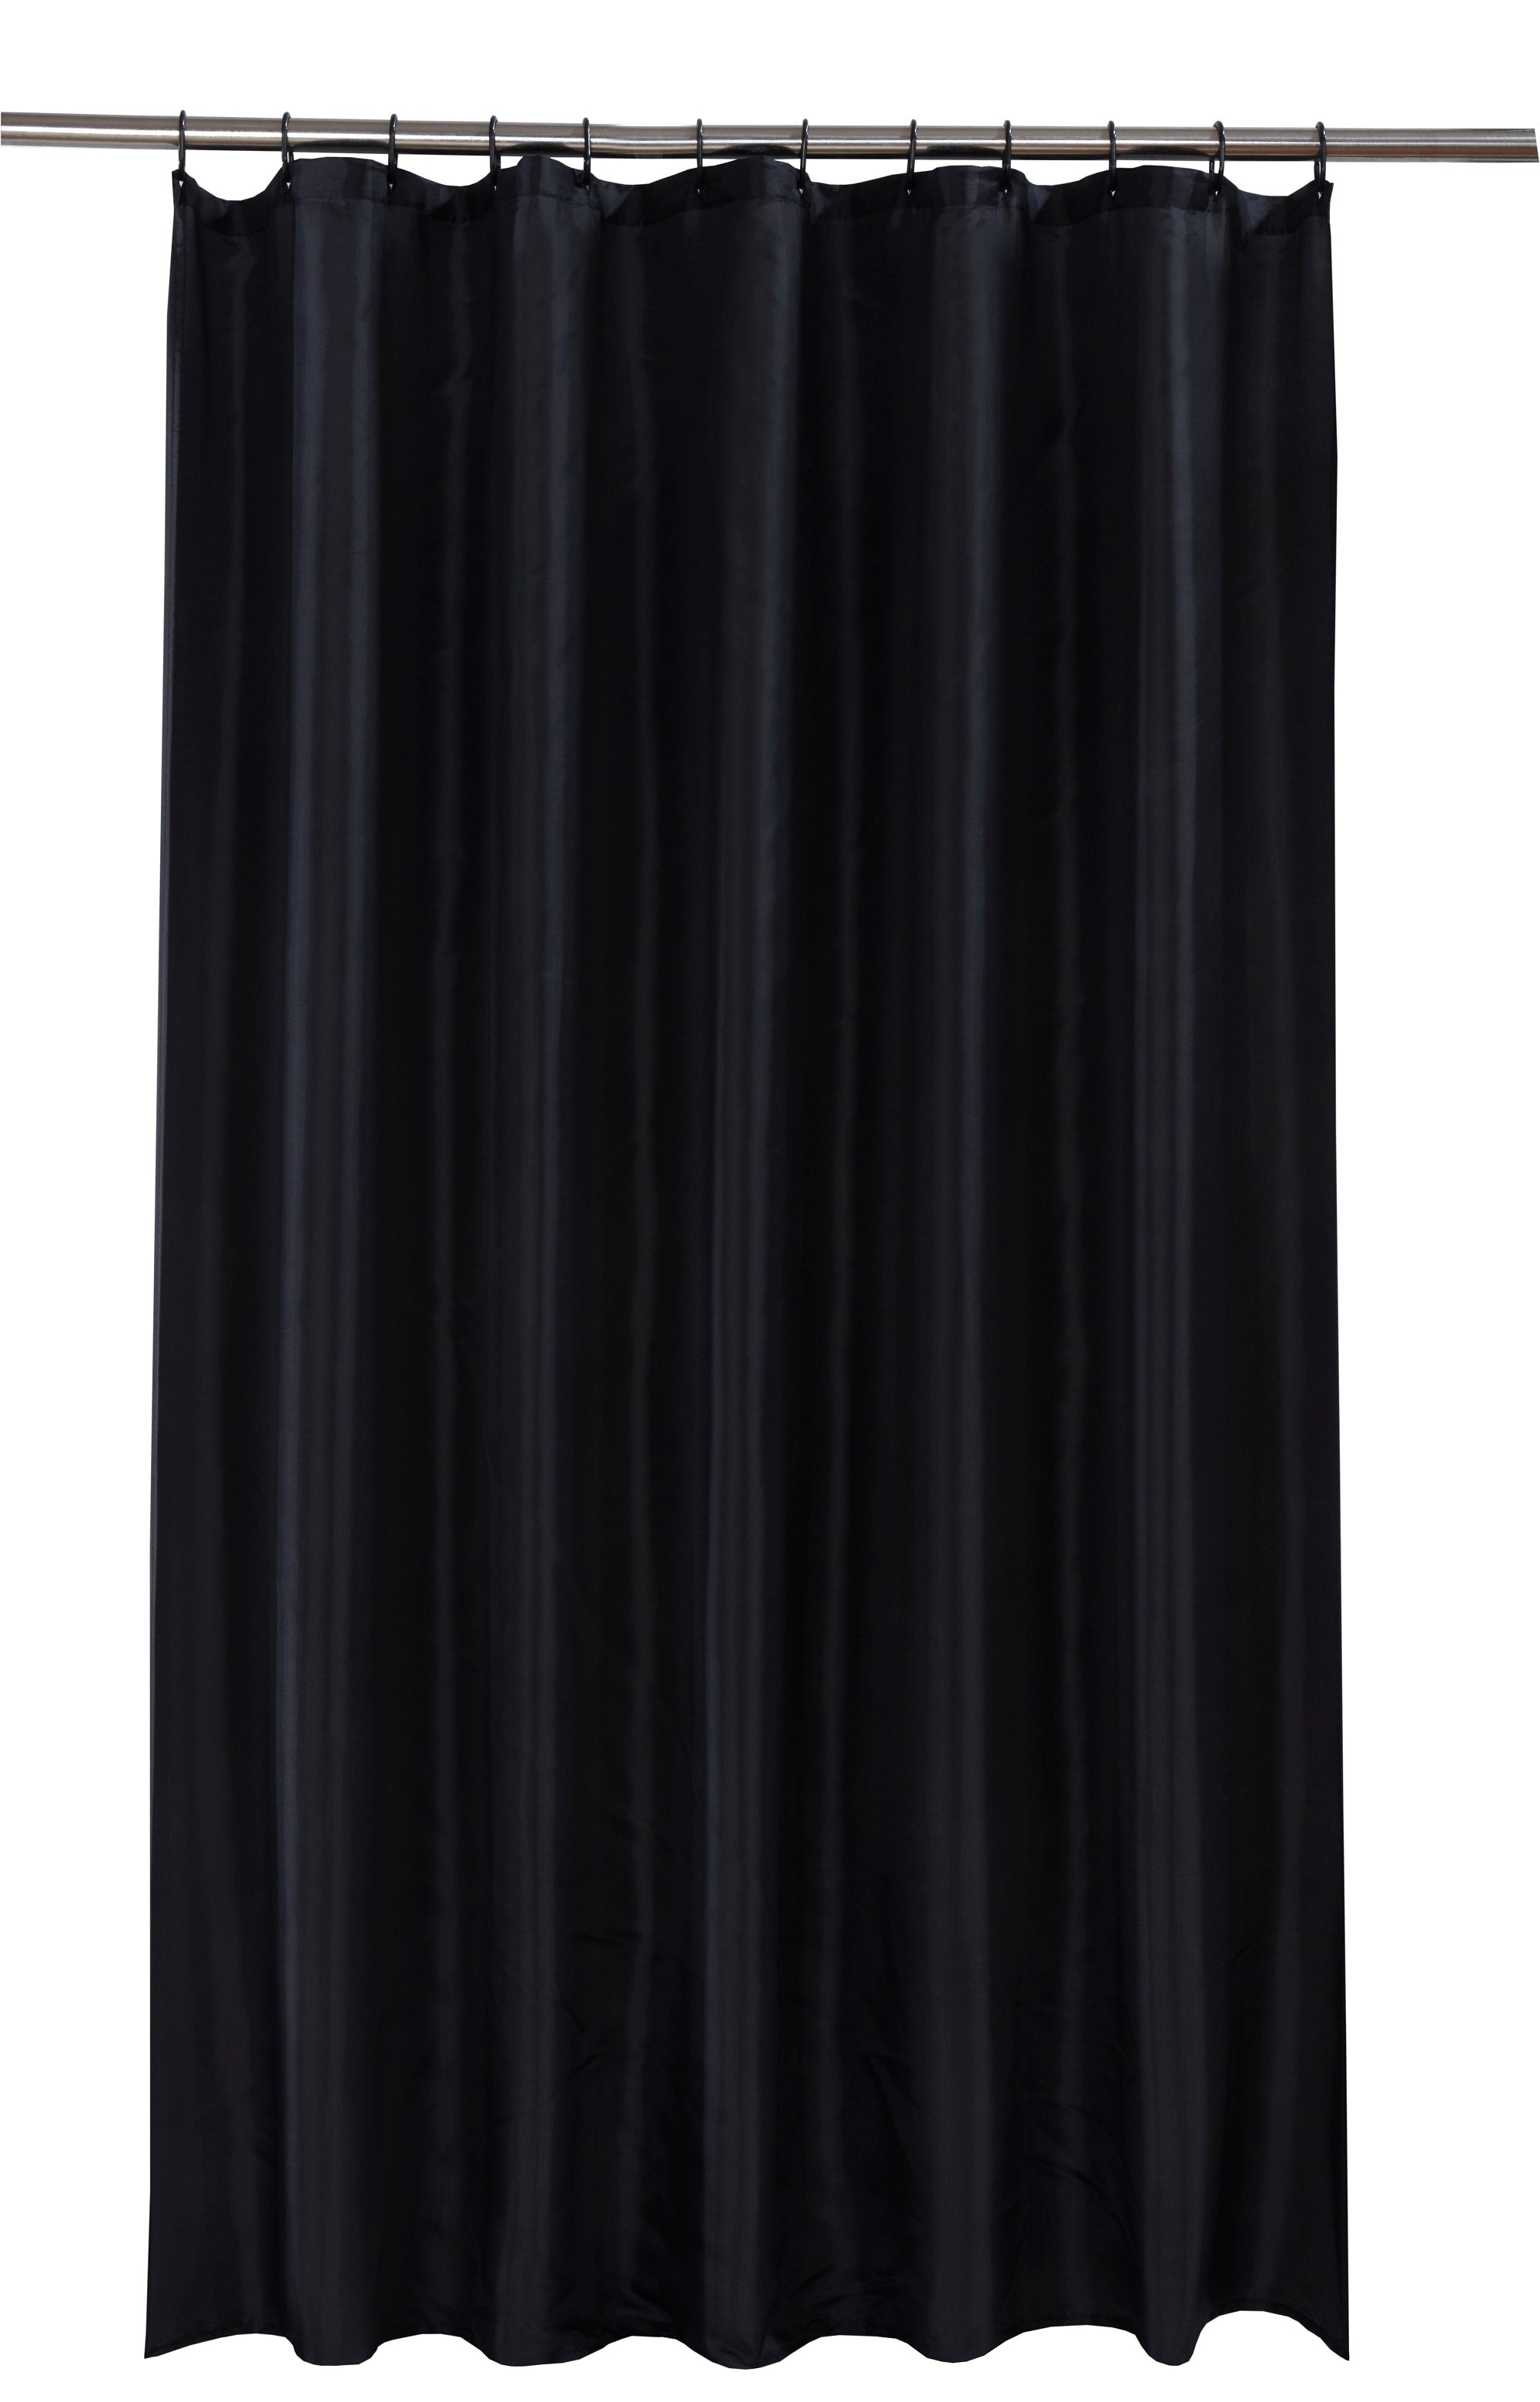 Waterline Black Shower Curtain With 12 Rings